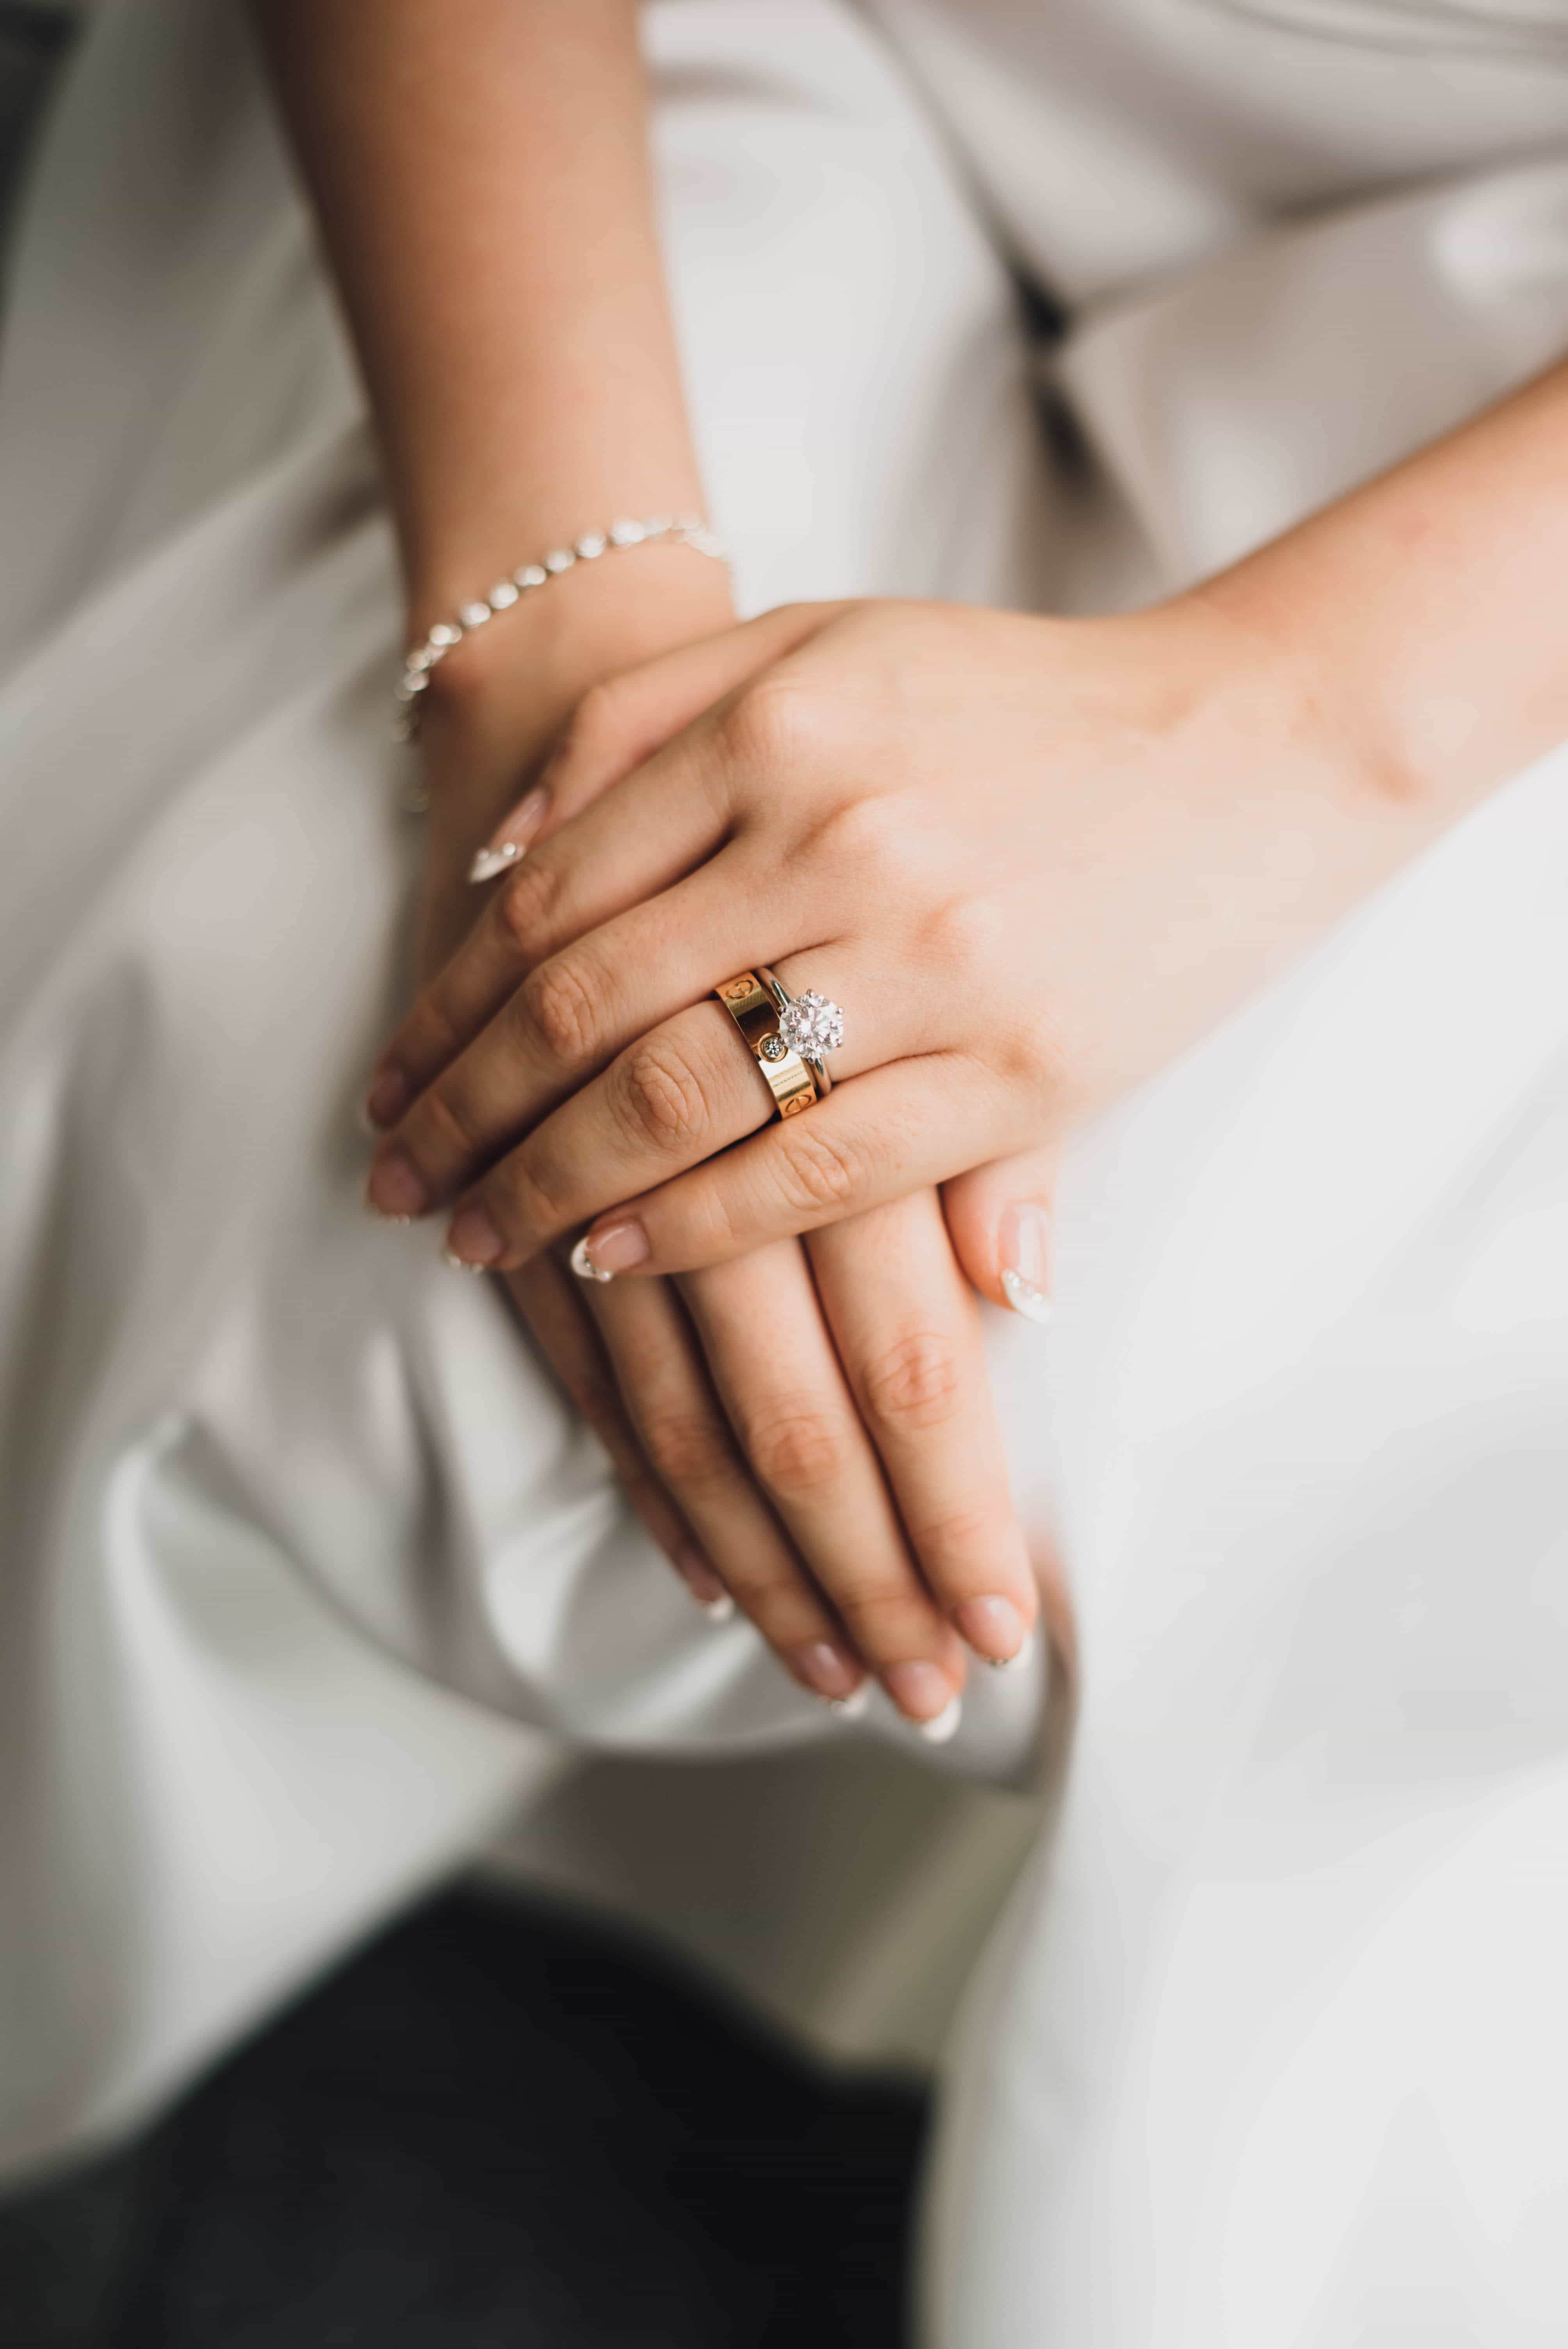 A wealthy bride - avoid an expensive divorce with our London divorce lawyers